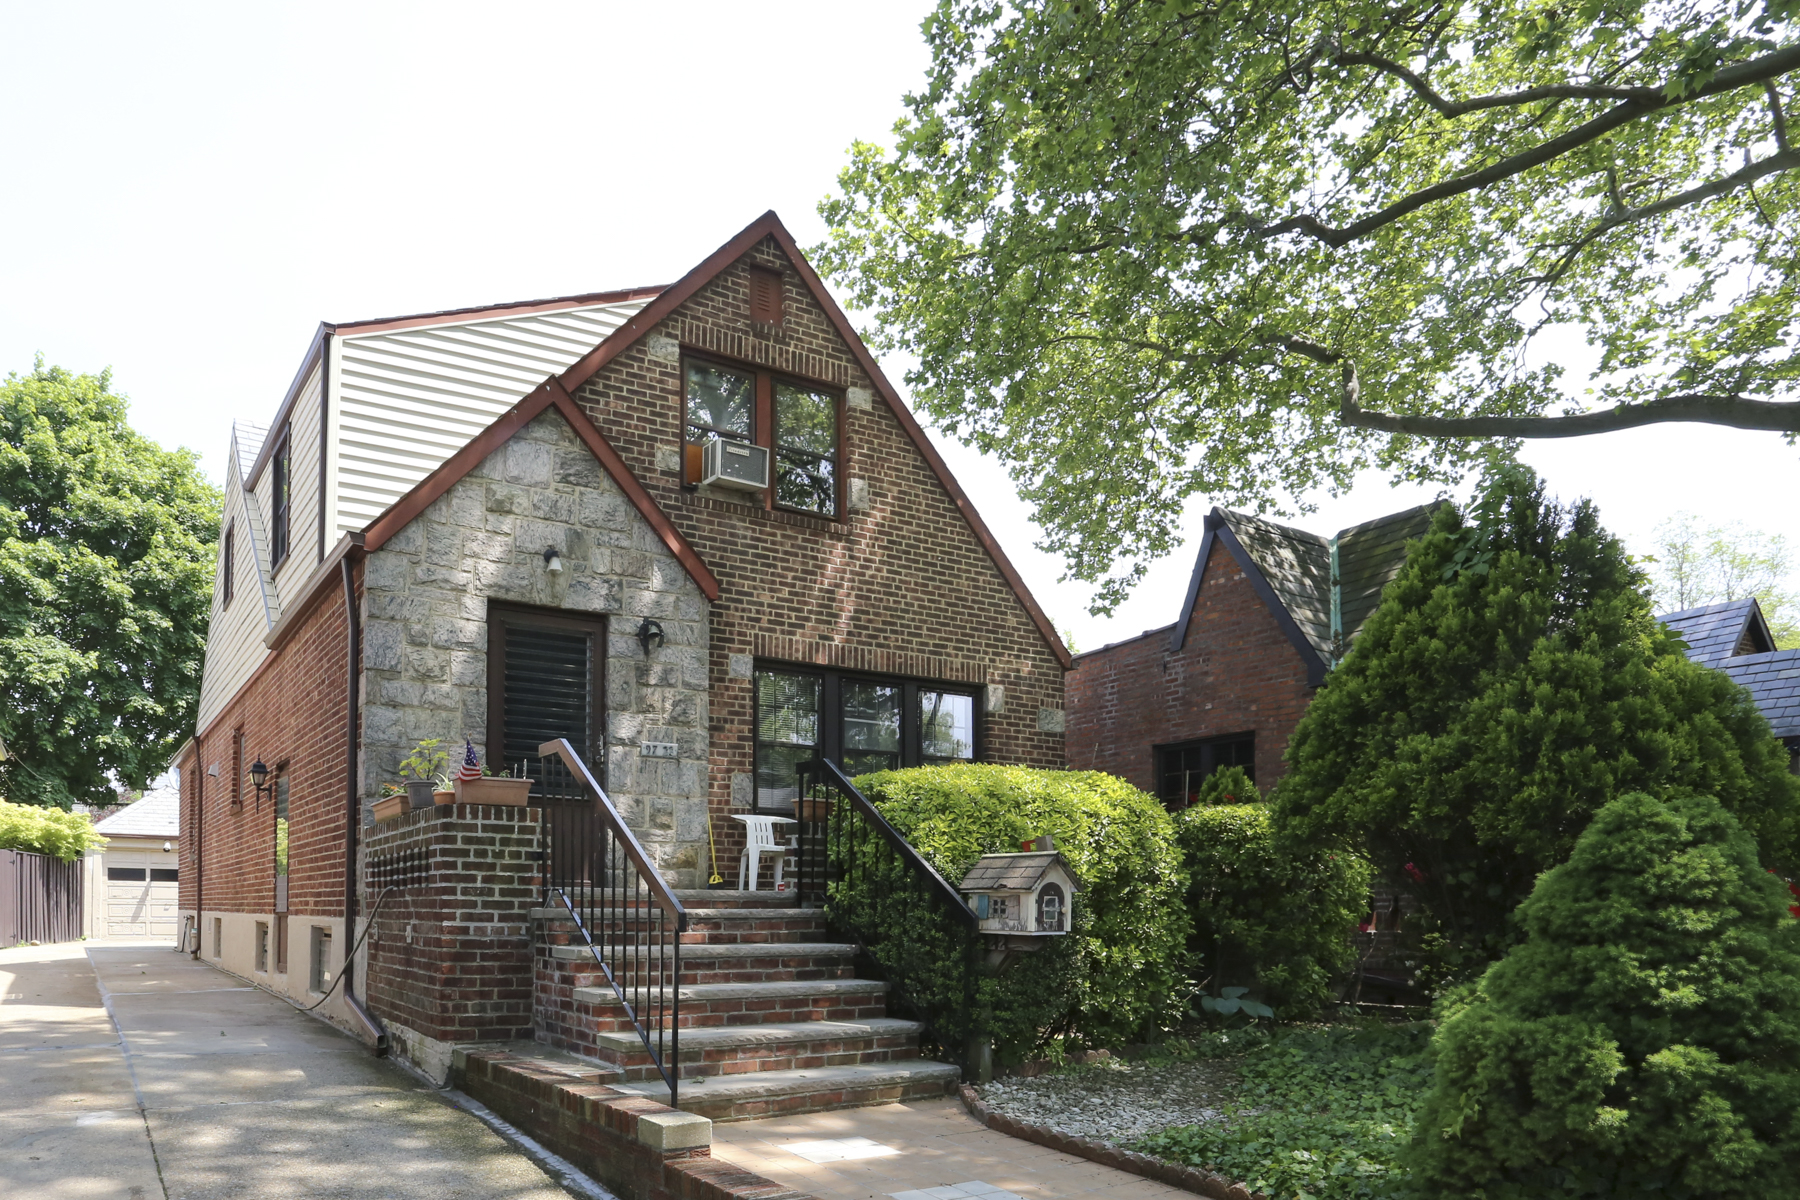 Additional photo for property listing at 97-22 72 DRIVE  Forest Hills, New York 11375 United States